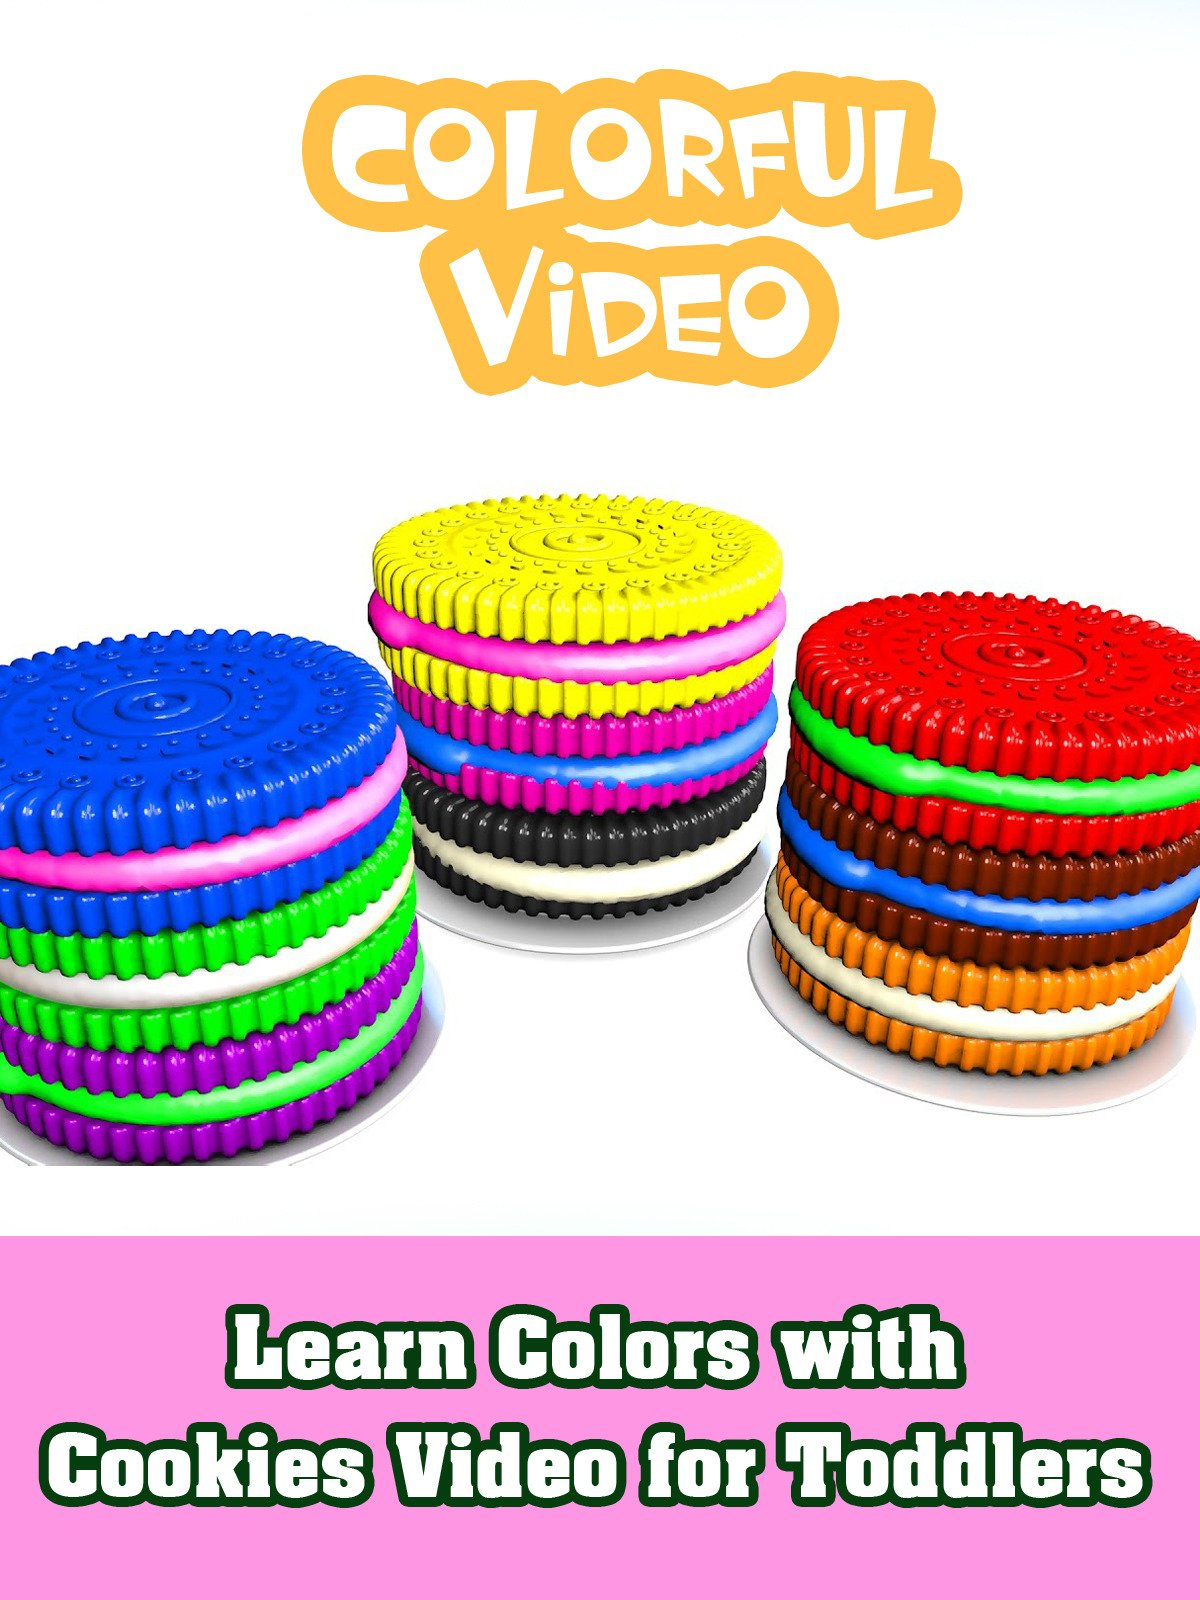 Learn Colors with Cookies Video for Toddlers